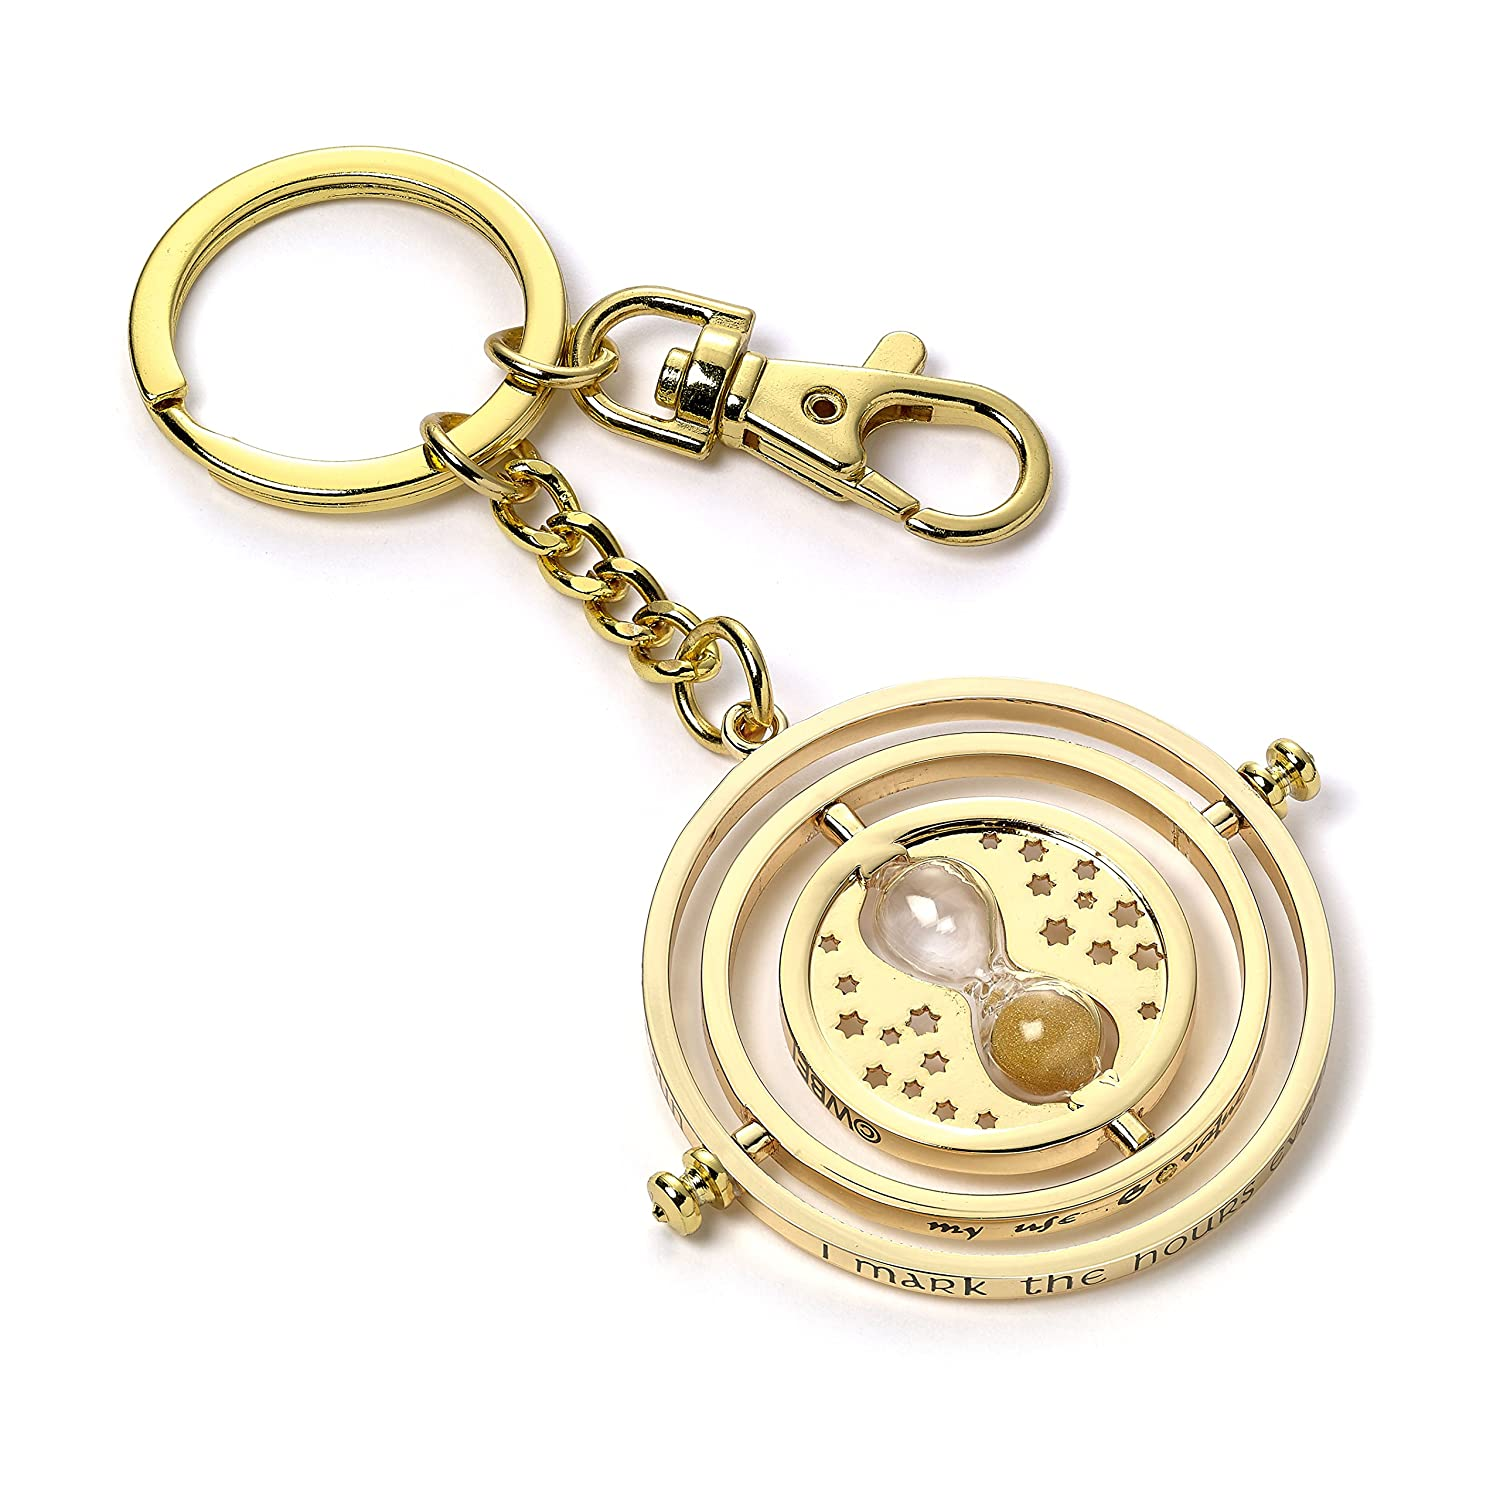 Official Harry Potter Rotating Time Turner Keyring Keychain - Gold Plated KH0097